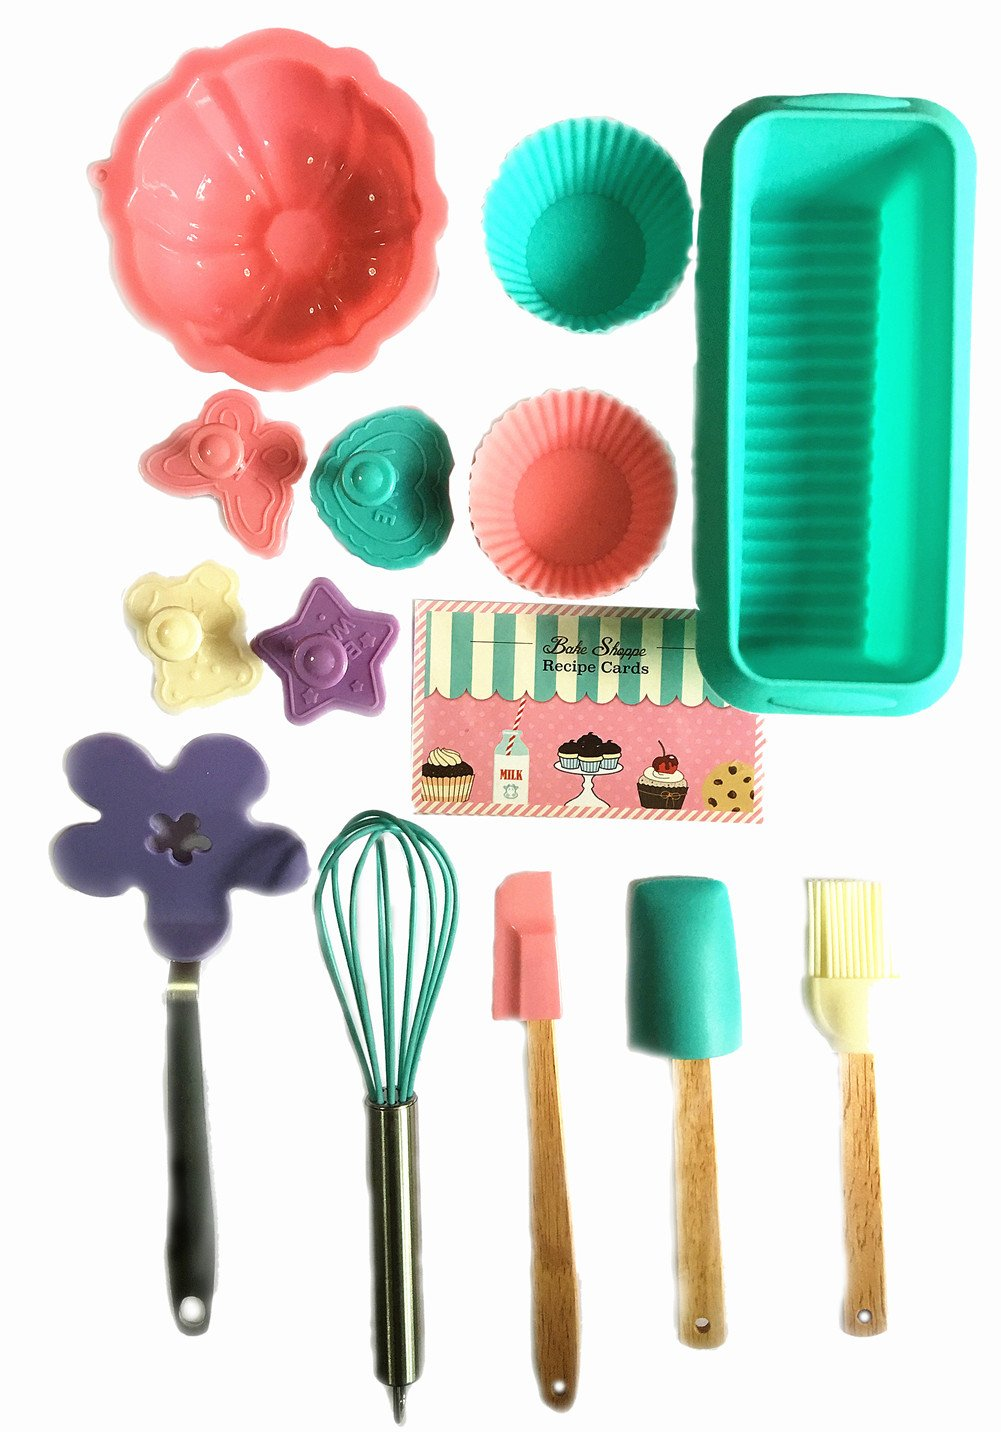 Bake Shoppe 25-piece Deluxe Baking Set for Kids